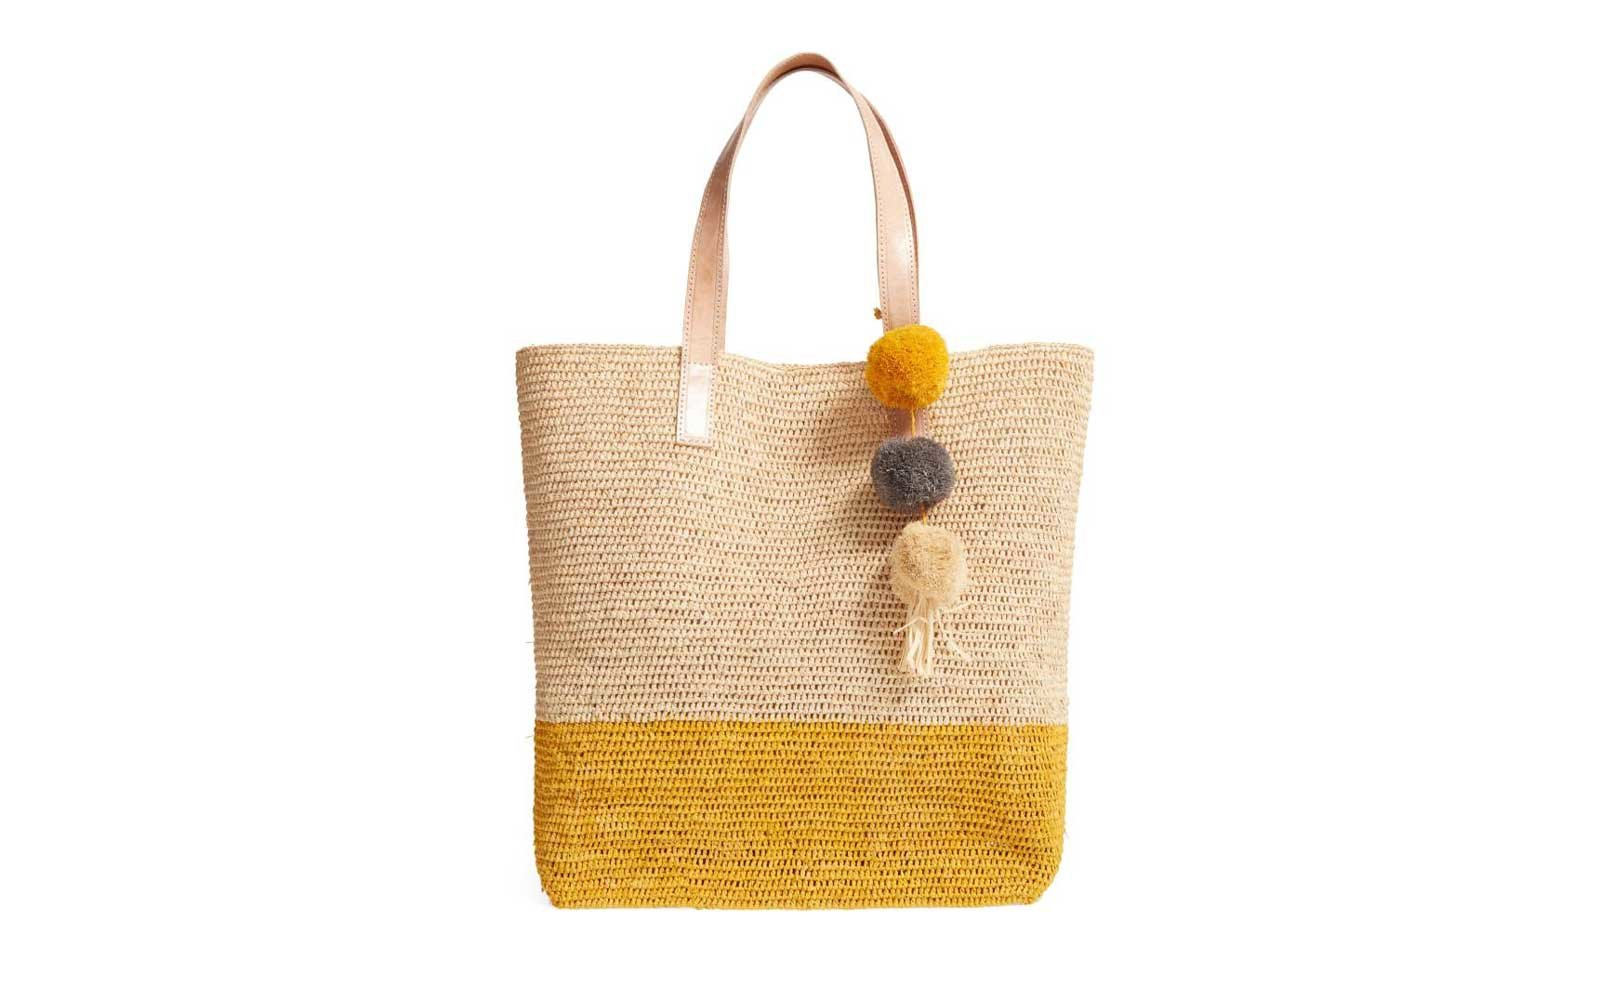 Mar Y Sol Montauk Woven Tote in Sunflower